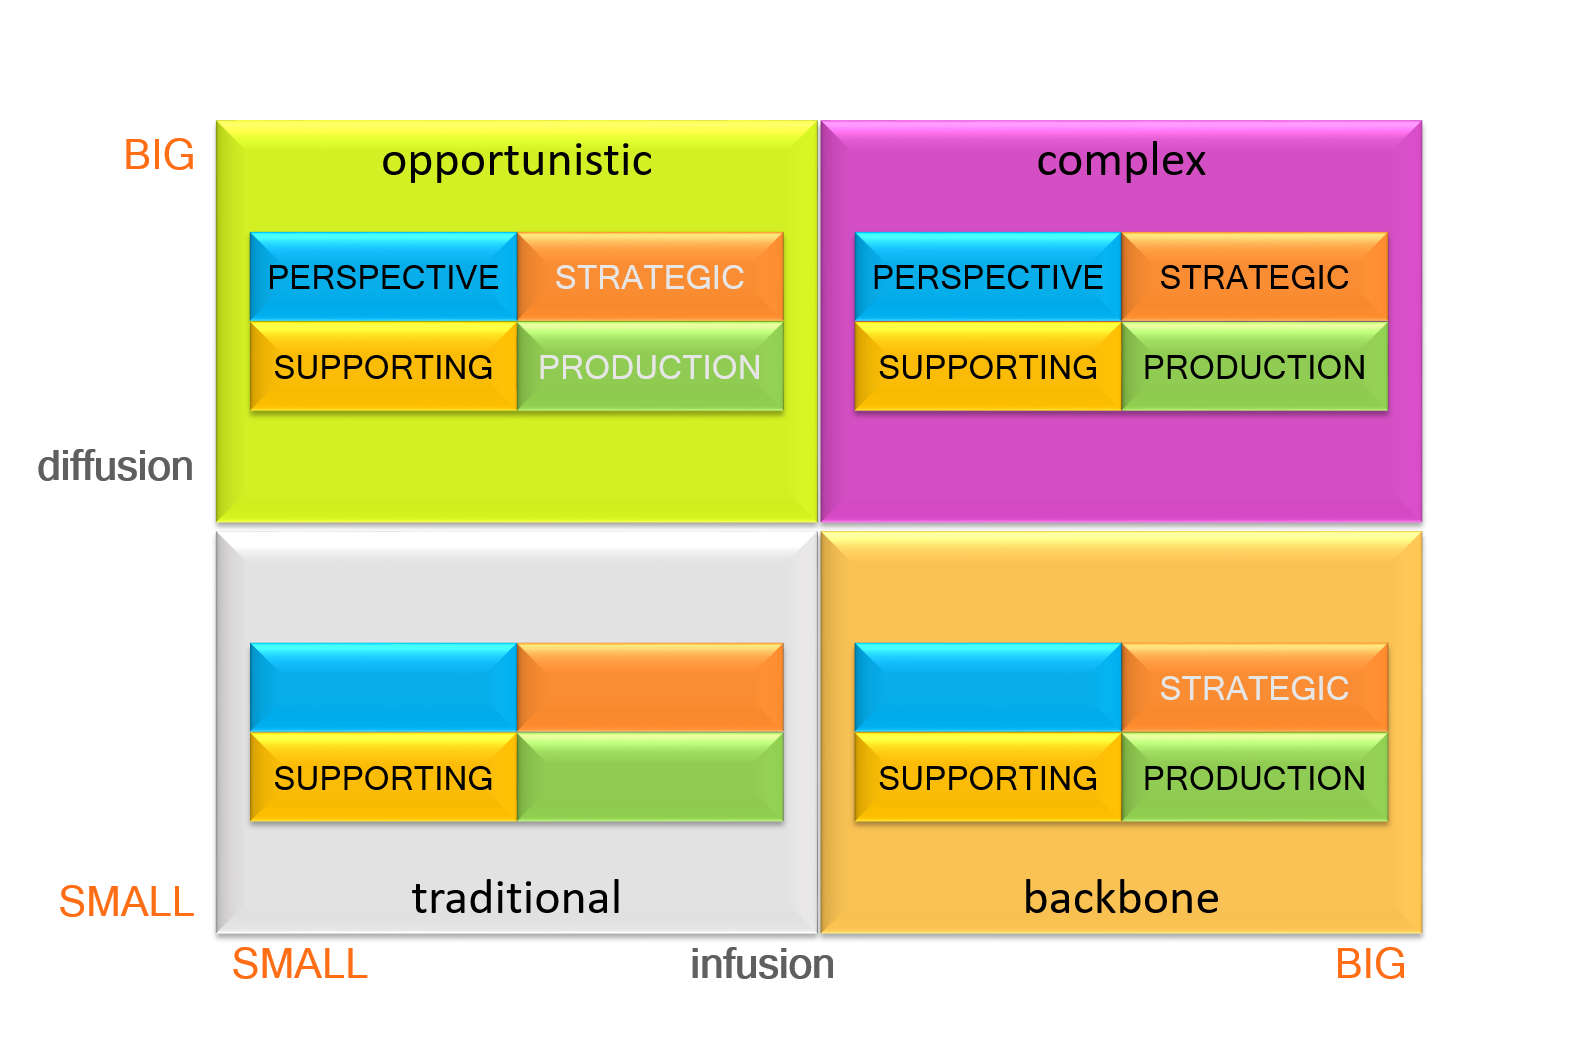 Diagram showing the four typologies of IS/ICT. These are, opportunistic, complex, traditional and backbone